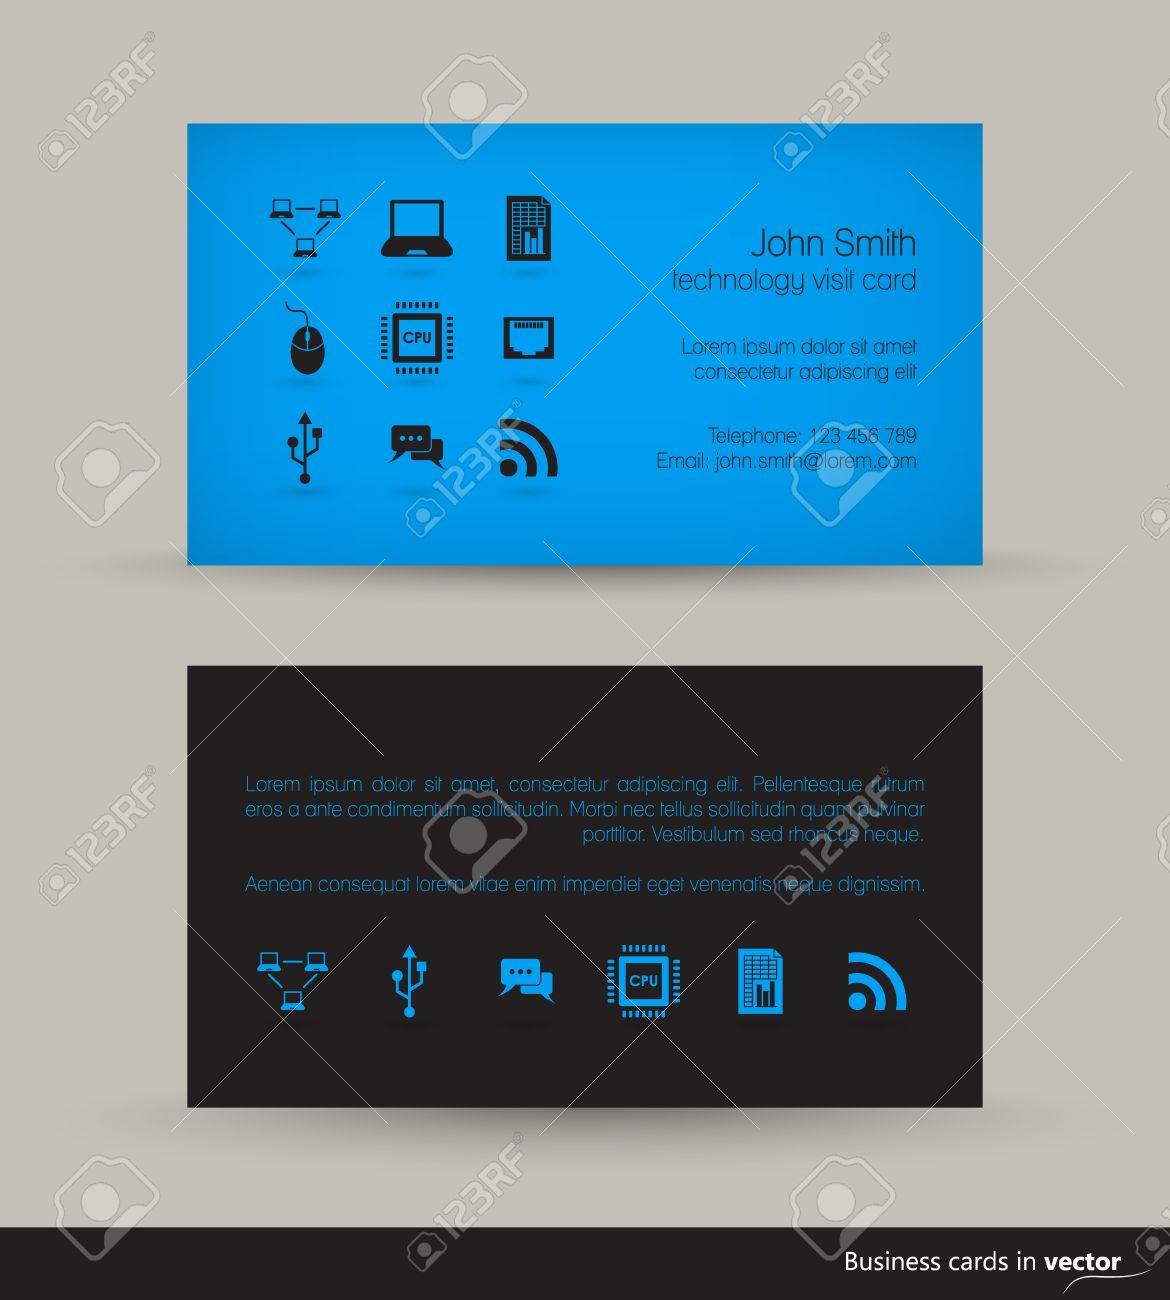 Technology visit cards Stock Vector - 21989645